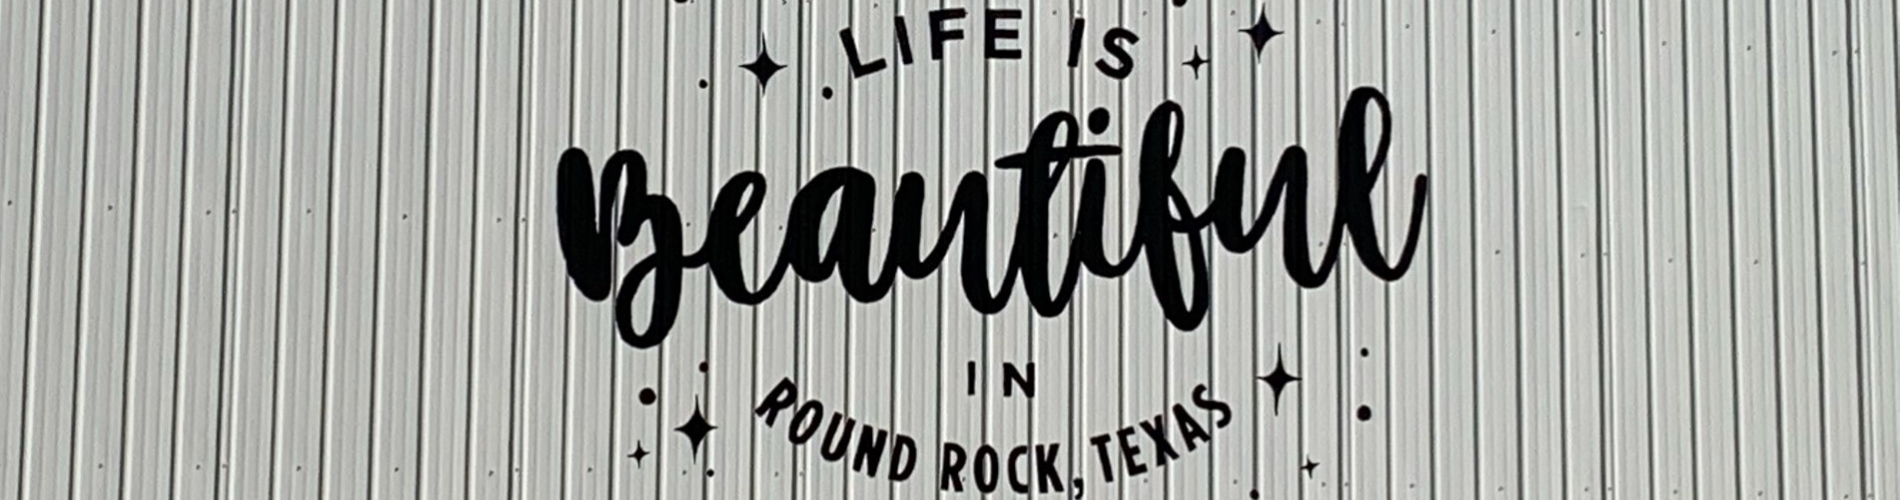 Life is Beautiful in Round Rock